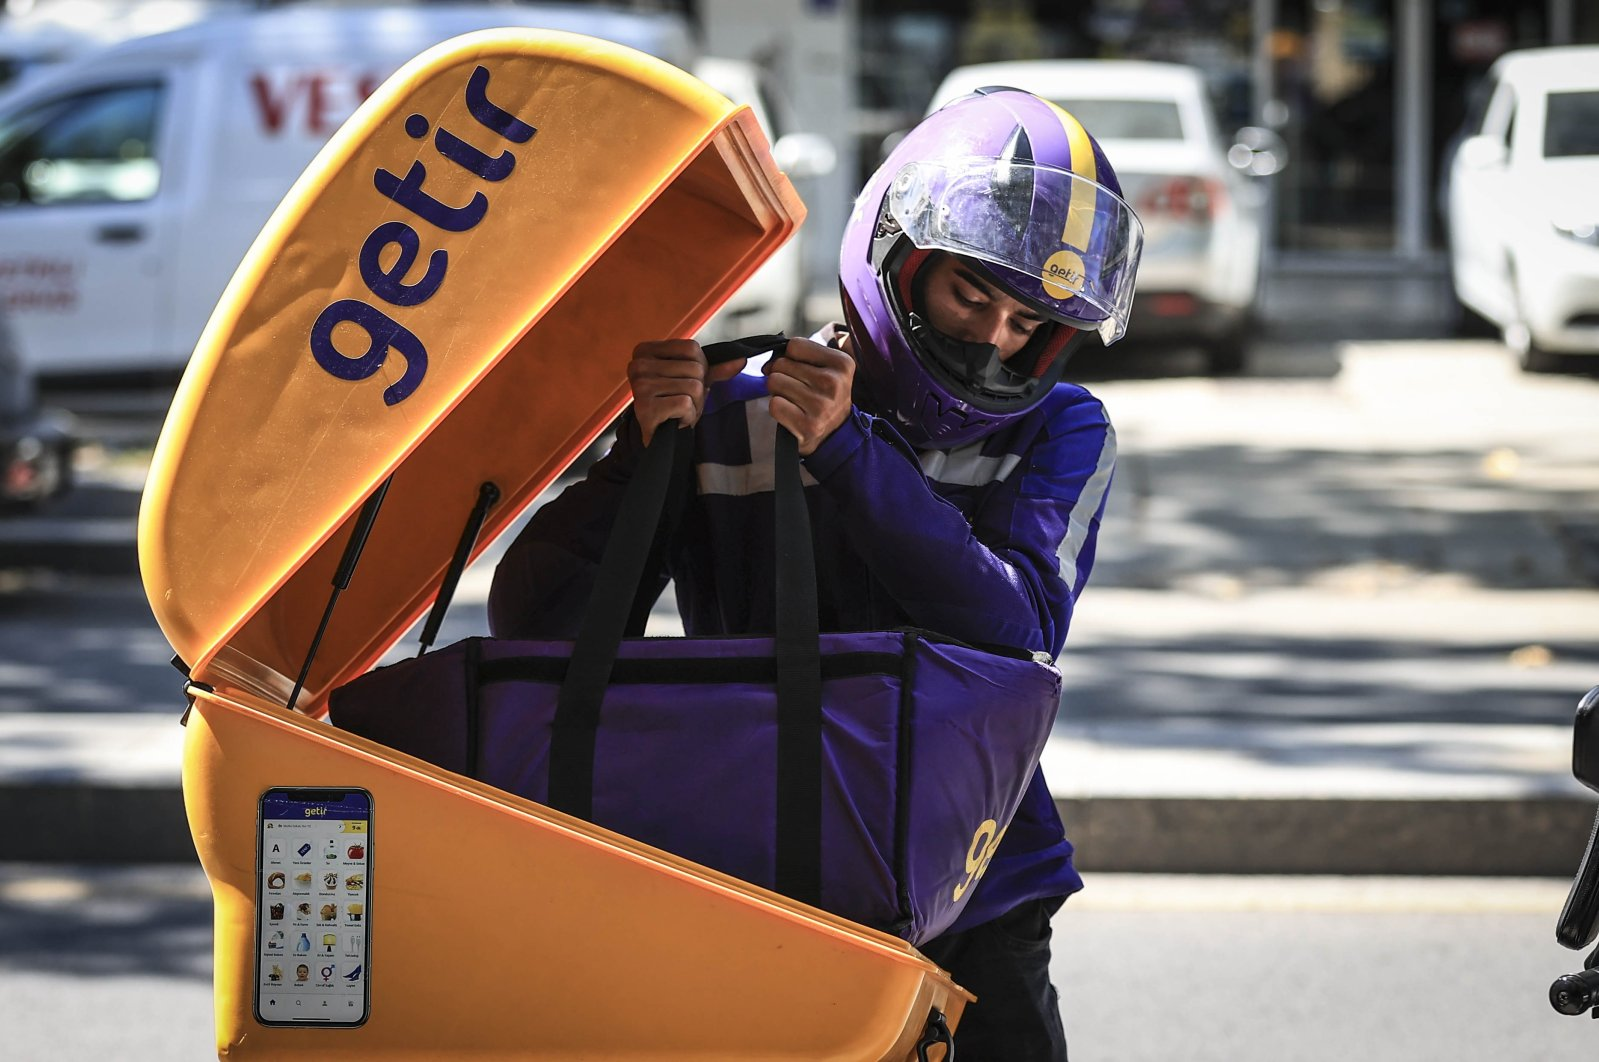 A Getir employee takes out groceries from his motorcycle, Aug. 8, 2021. (AA Photo)